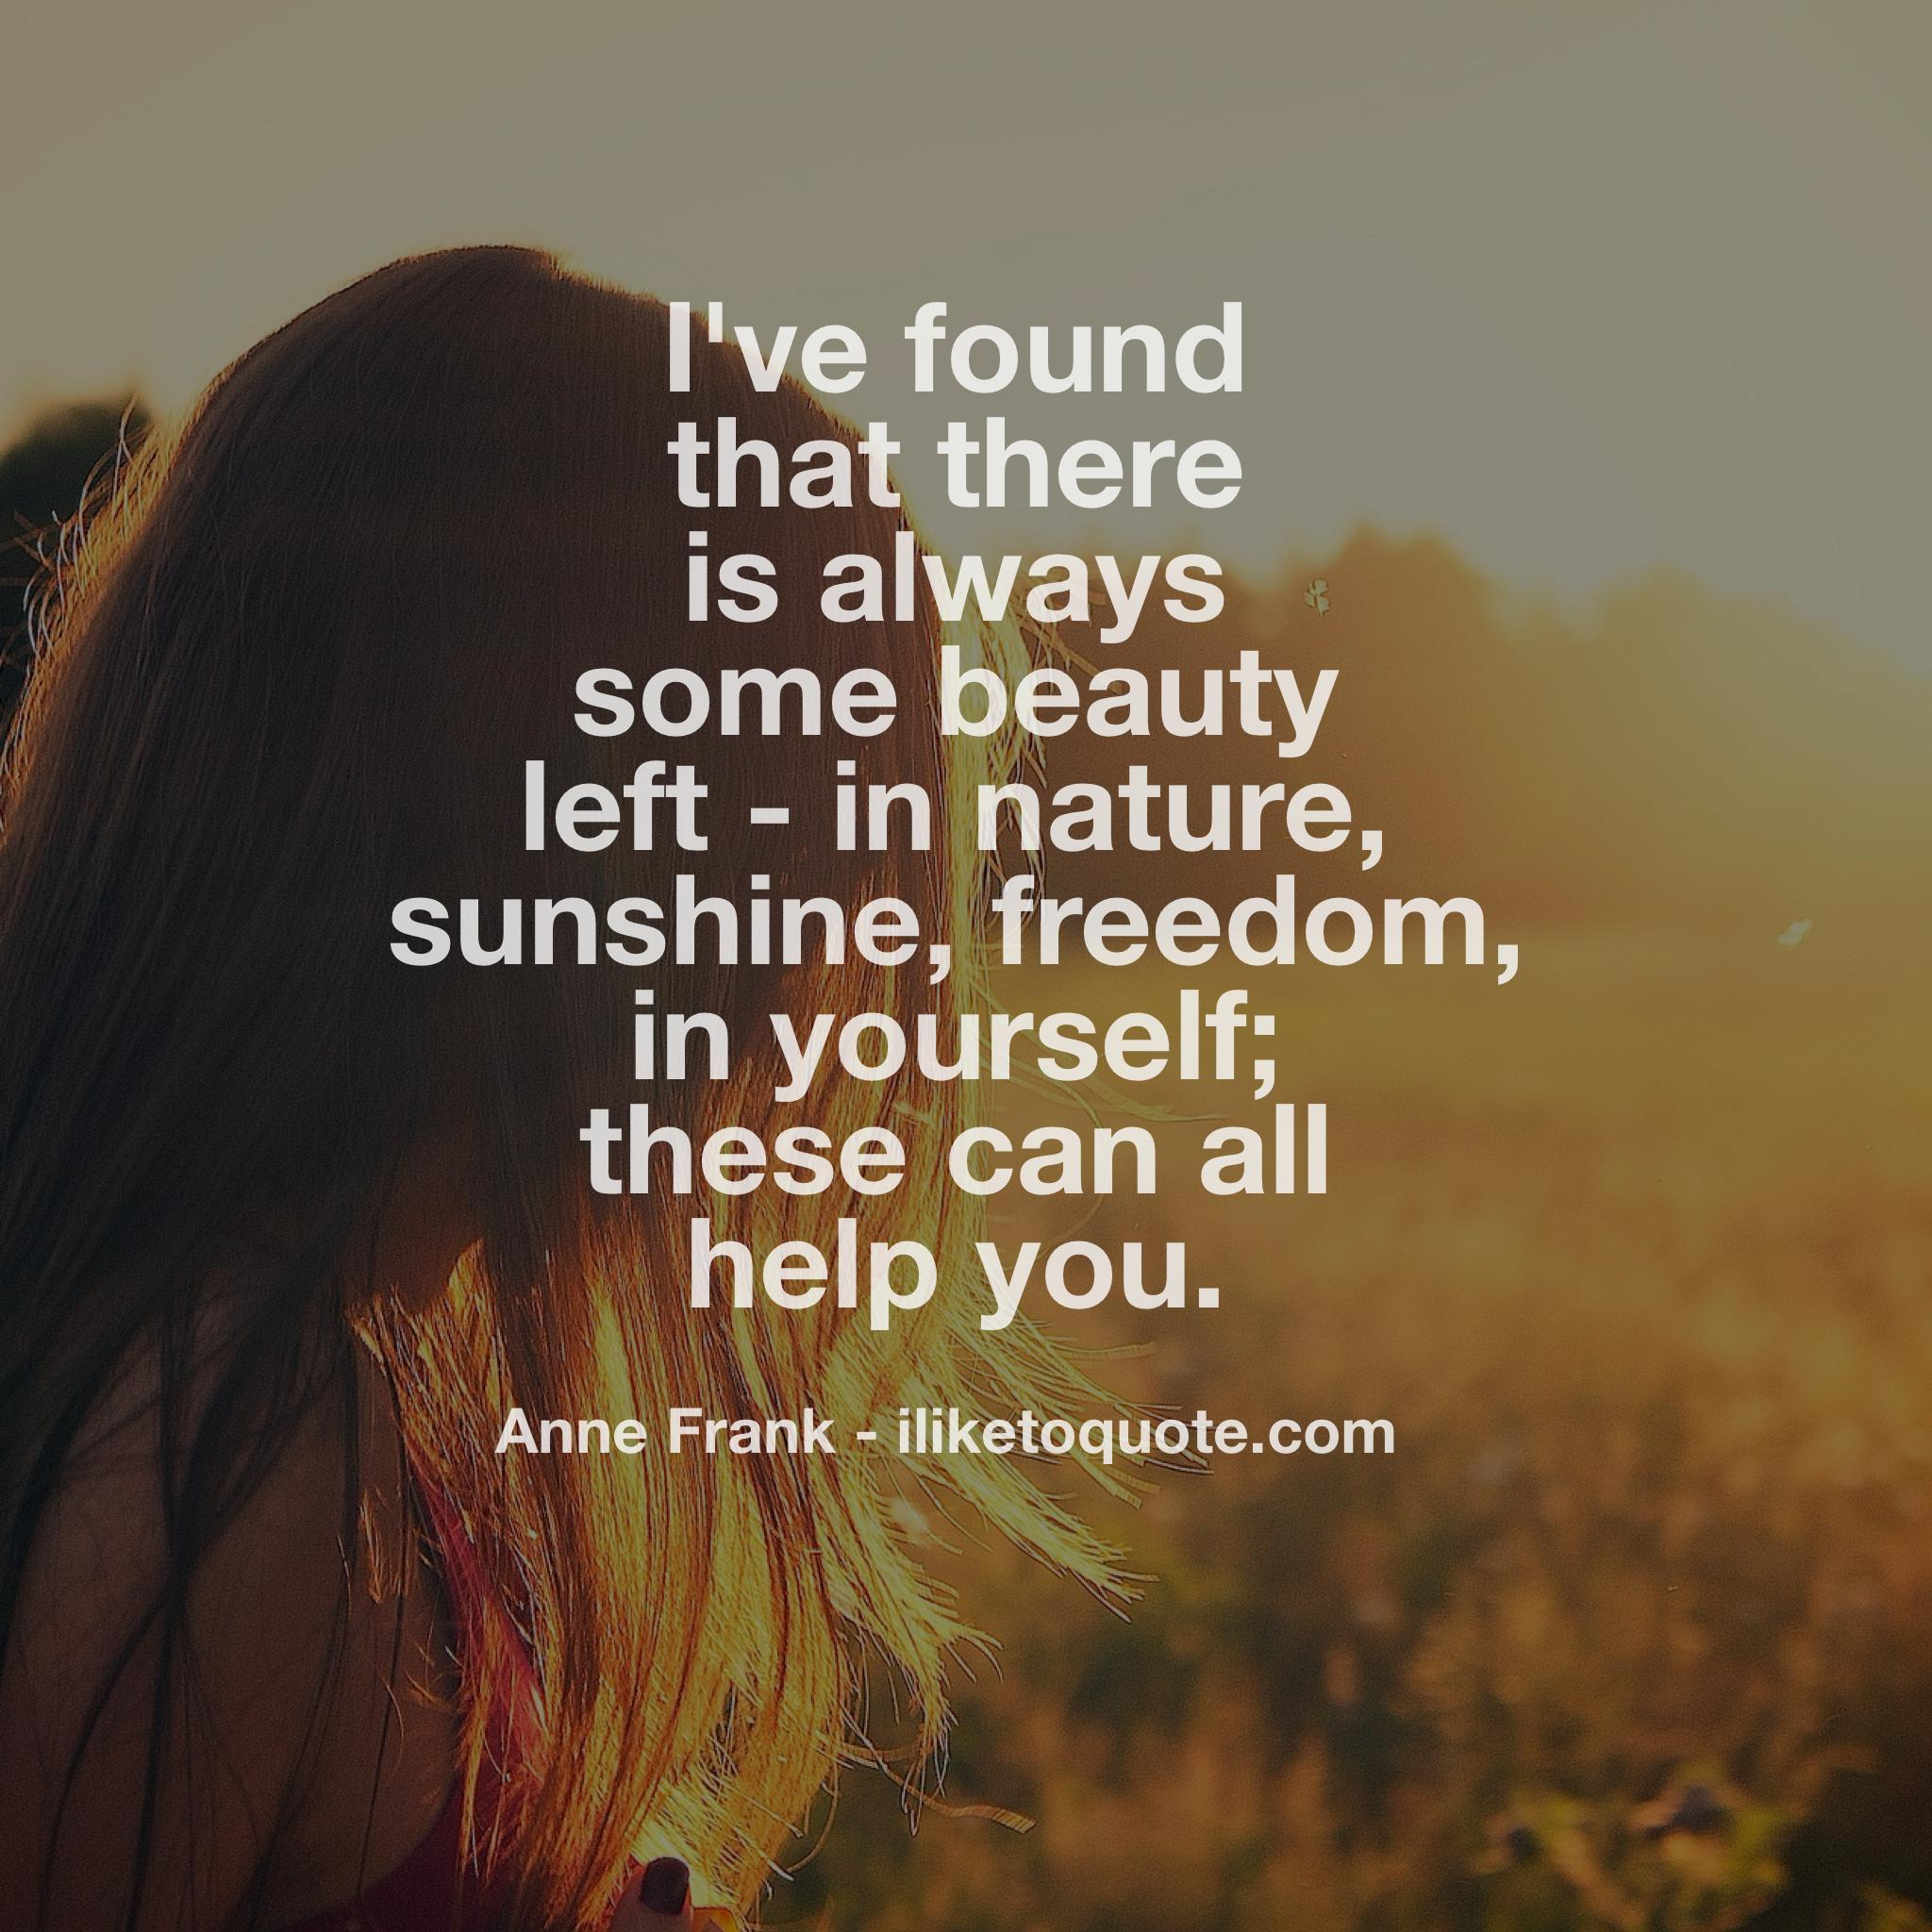 I've found that there is always some beauty left - in nature, sunshine, freedom, in yourself; all these can all help you.